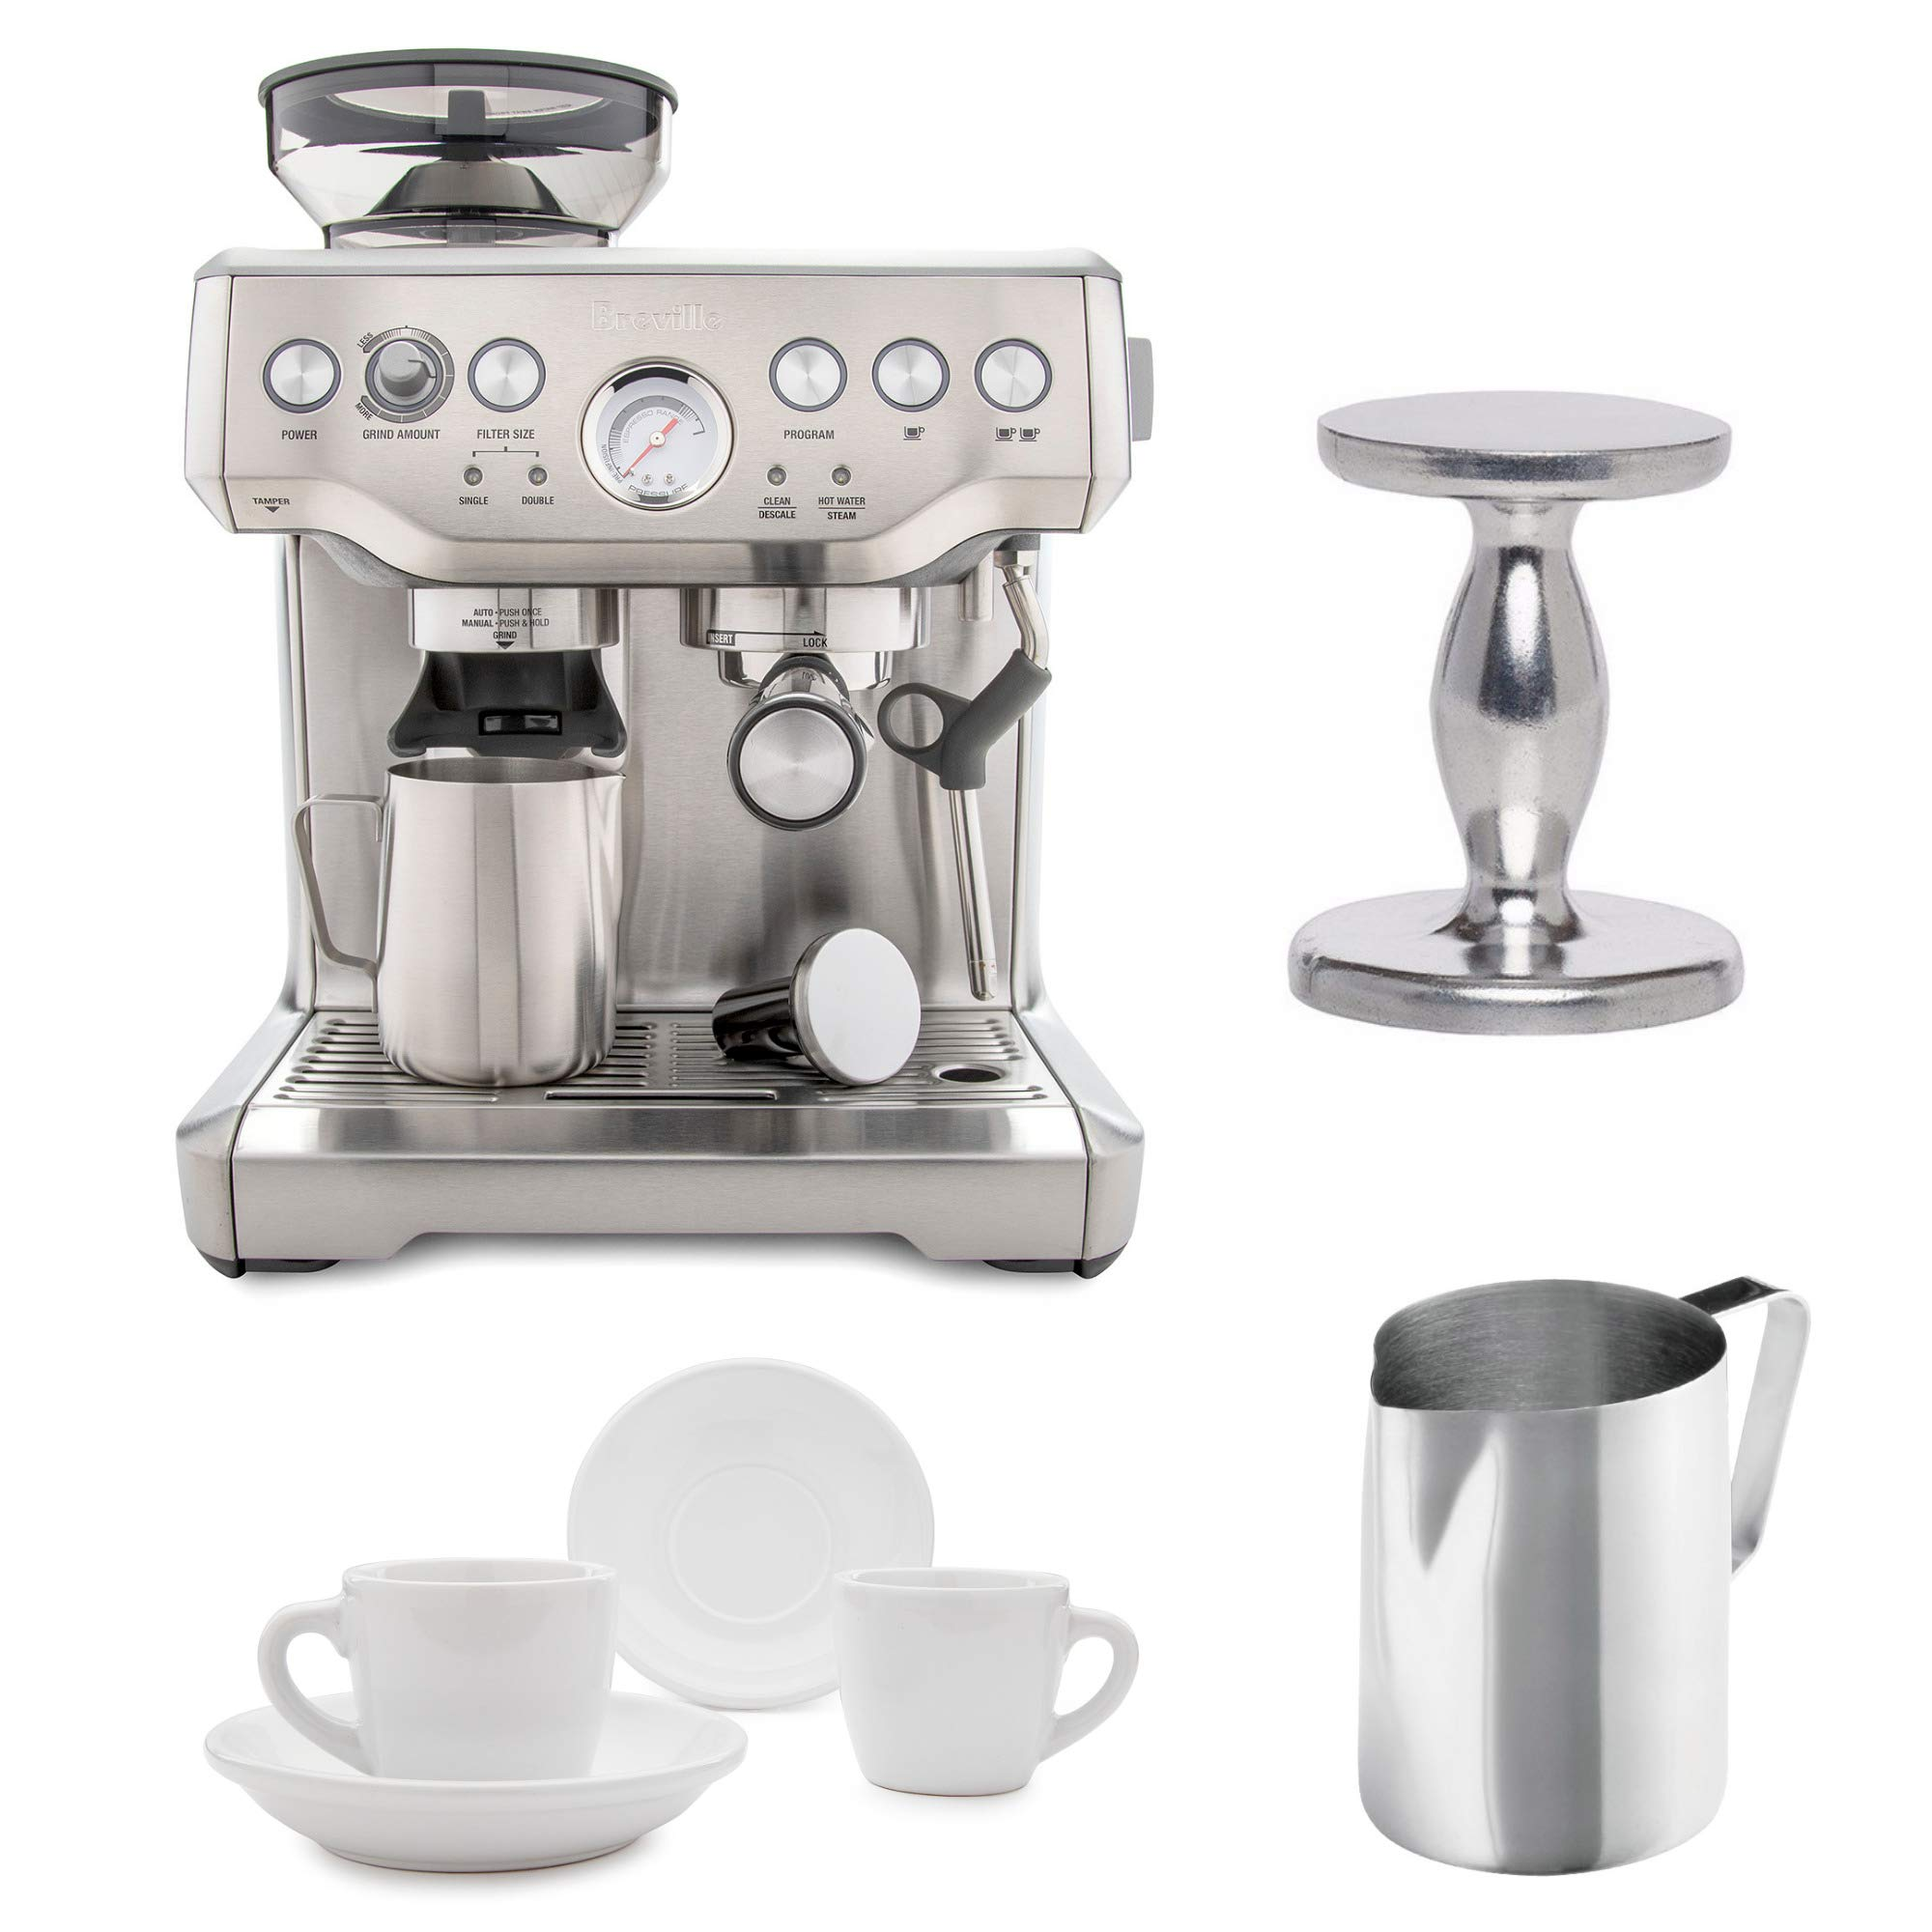 Breville BES870XL Barista Express Espresso Machine with Espresso Tamper, Frothing Pitcher & 2 Cup and Saucers by BREVILLE